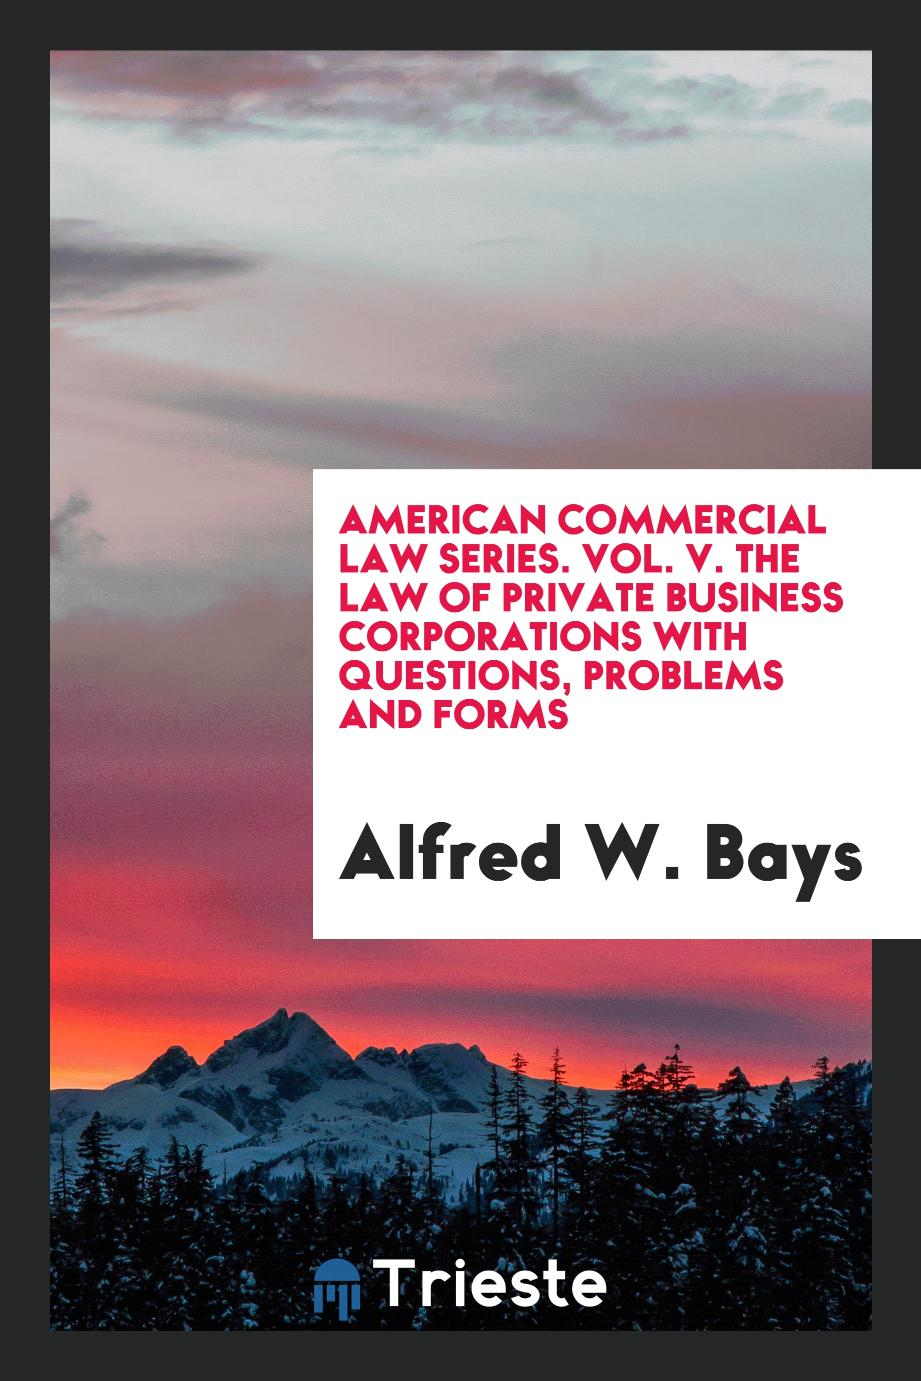 American commercial law series. Vol. V. The law of private business corporations with questions, problems and forms